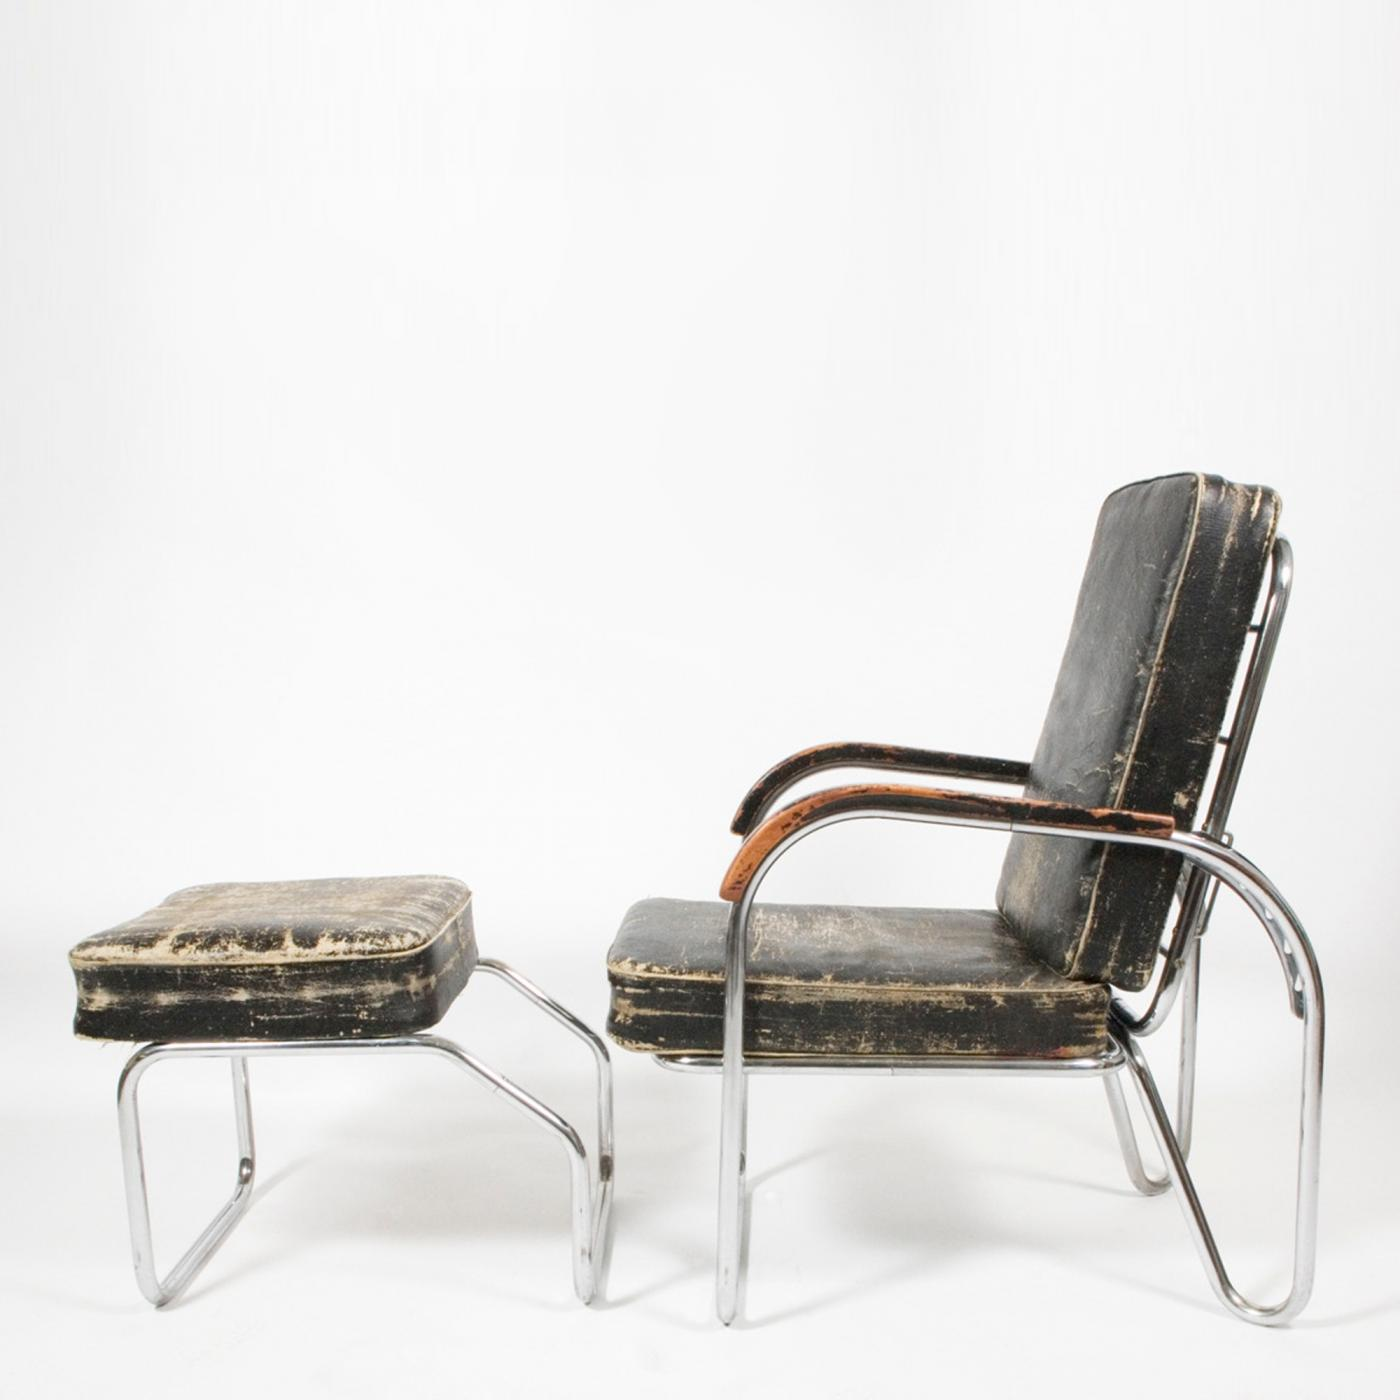 Bauhaus 1920s Original Bauhaus Easy Chair And Ottoman